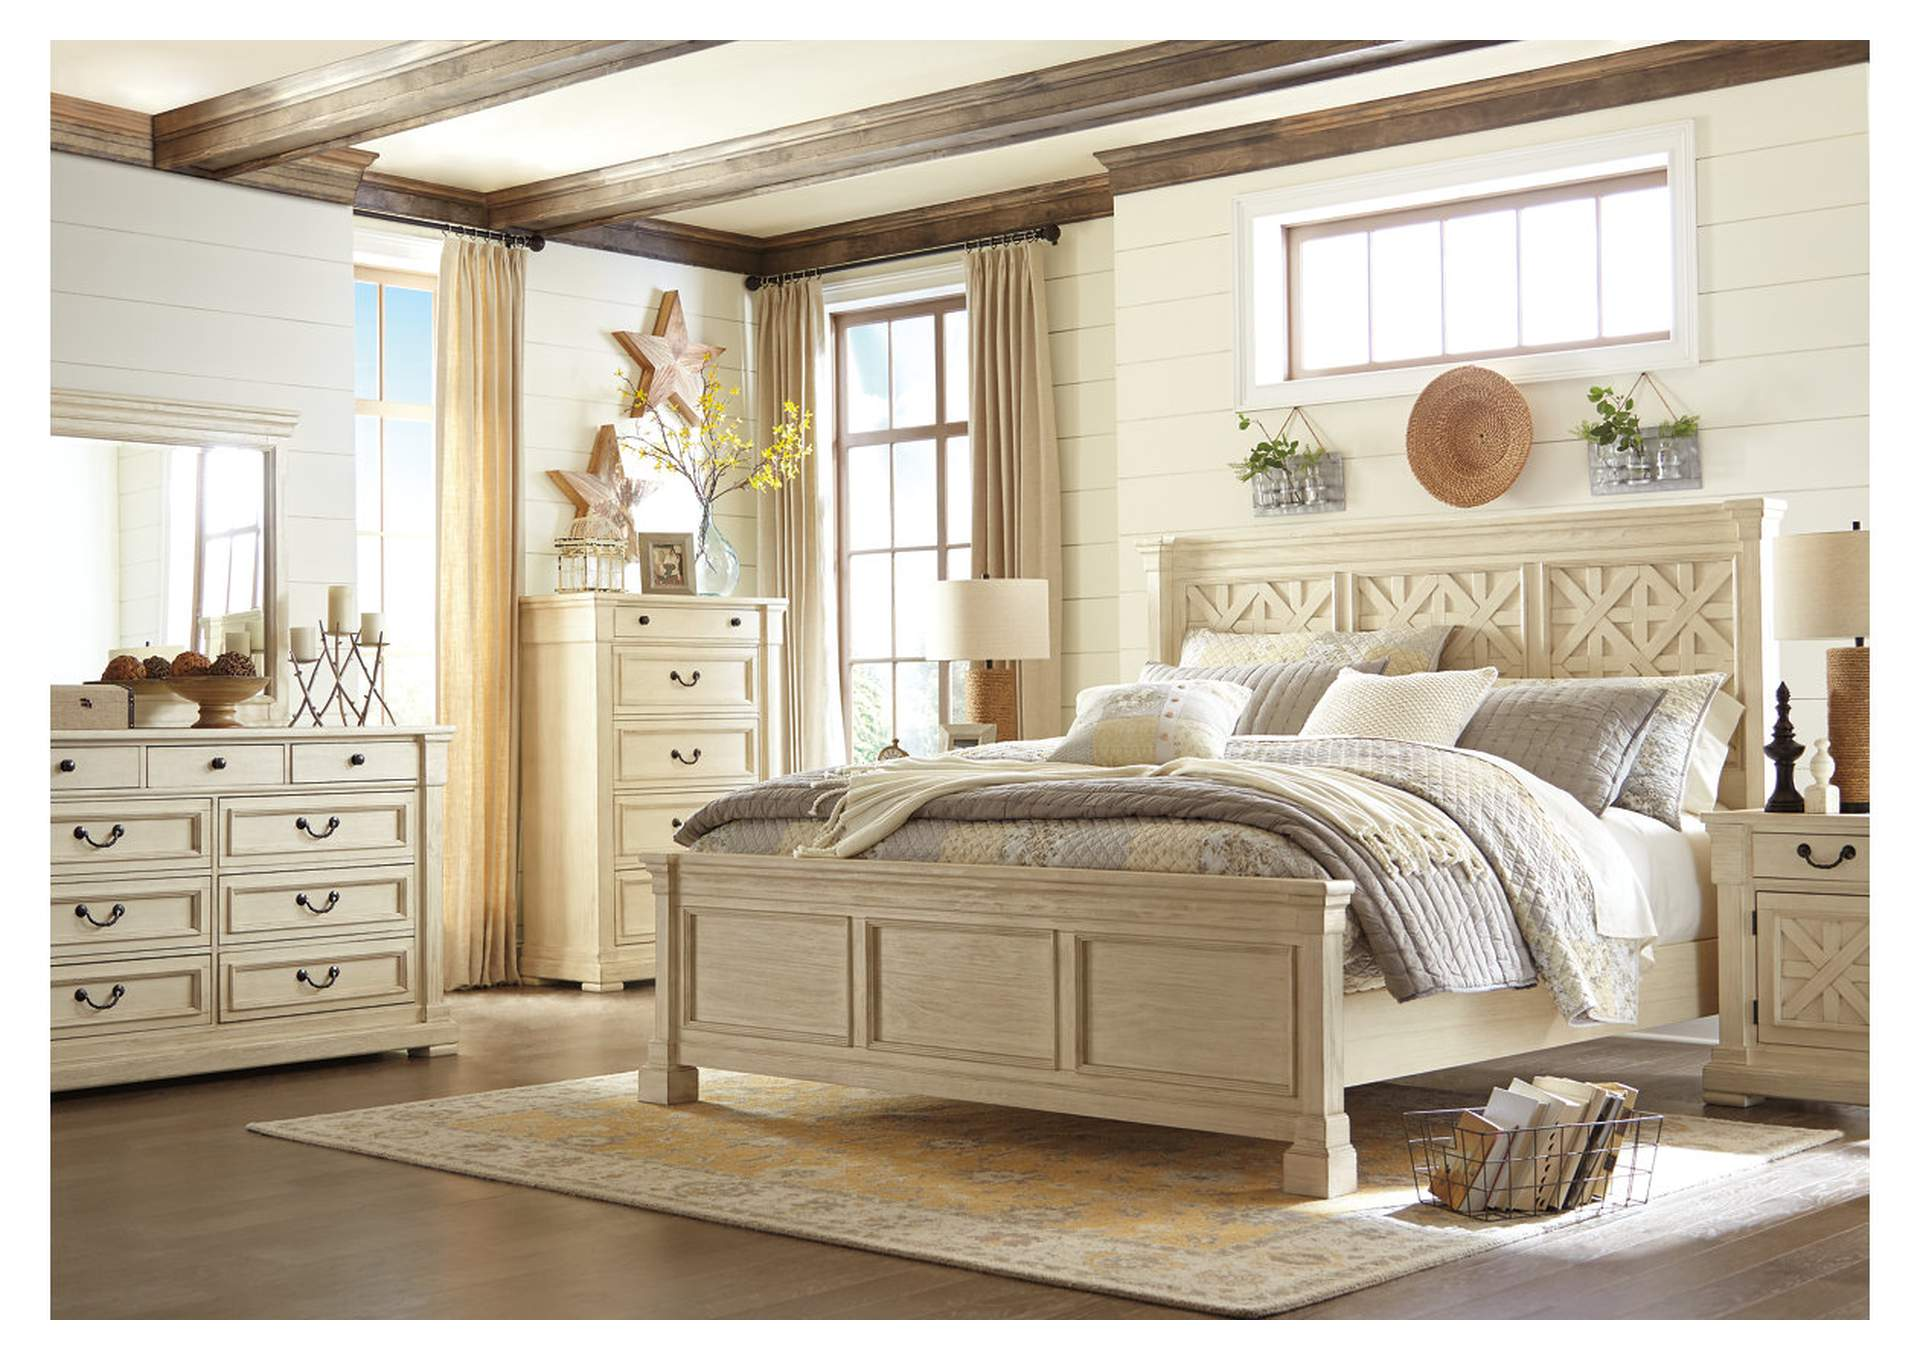 Bolanburg White Queen Panel Bed w/Dresser, Mirror & Nightstand,Signature Design By Ashley